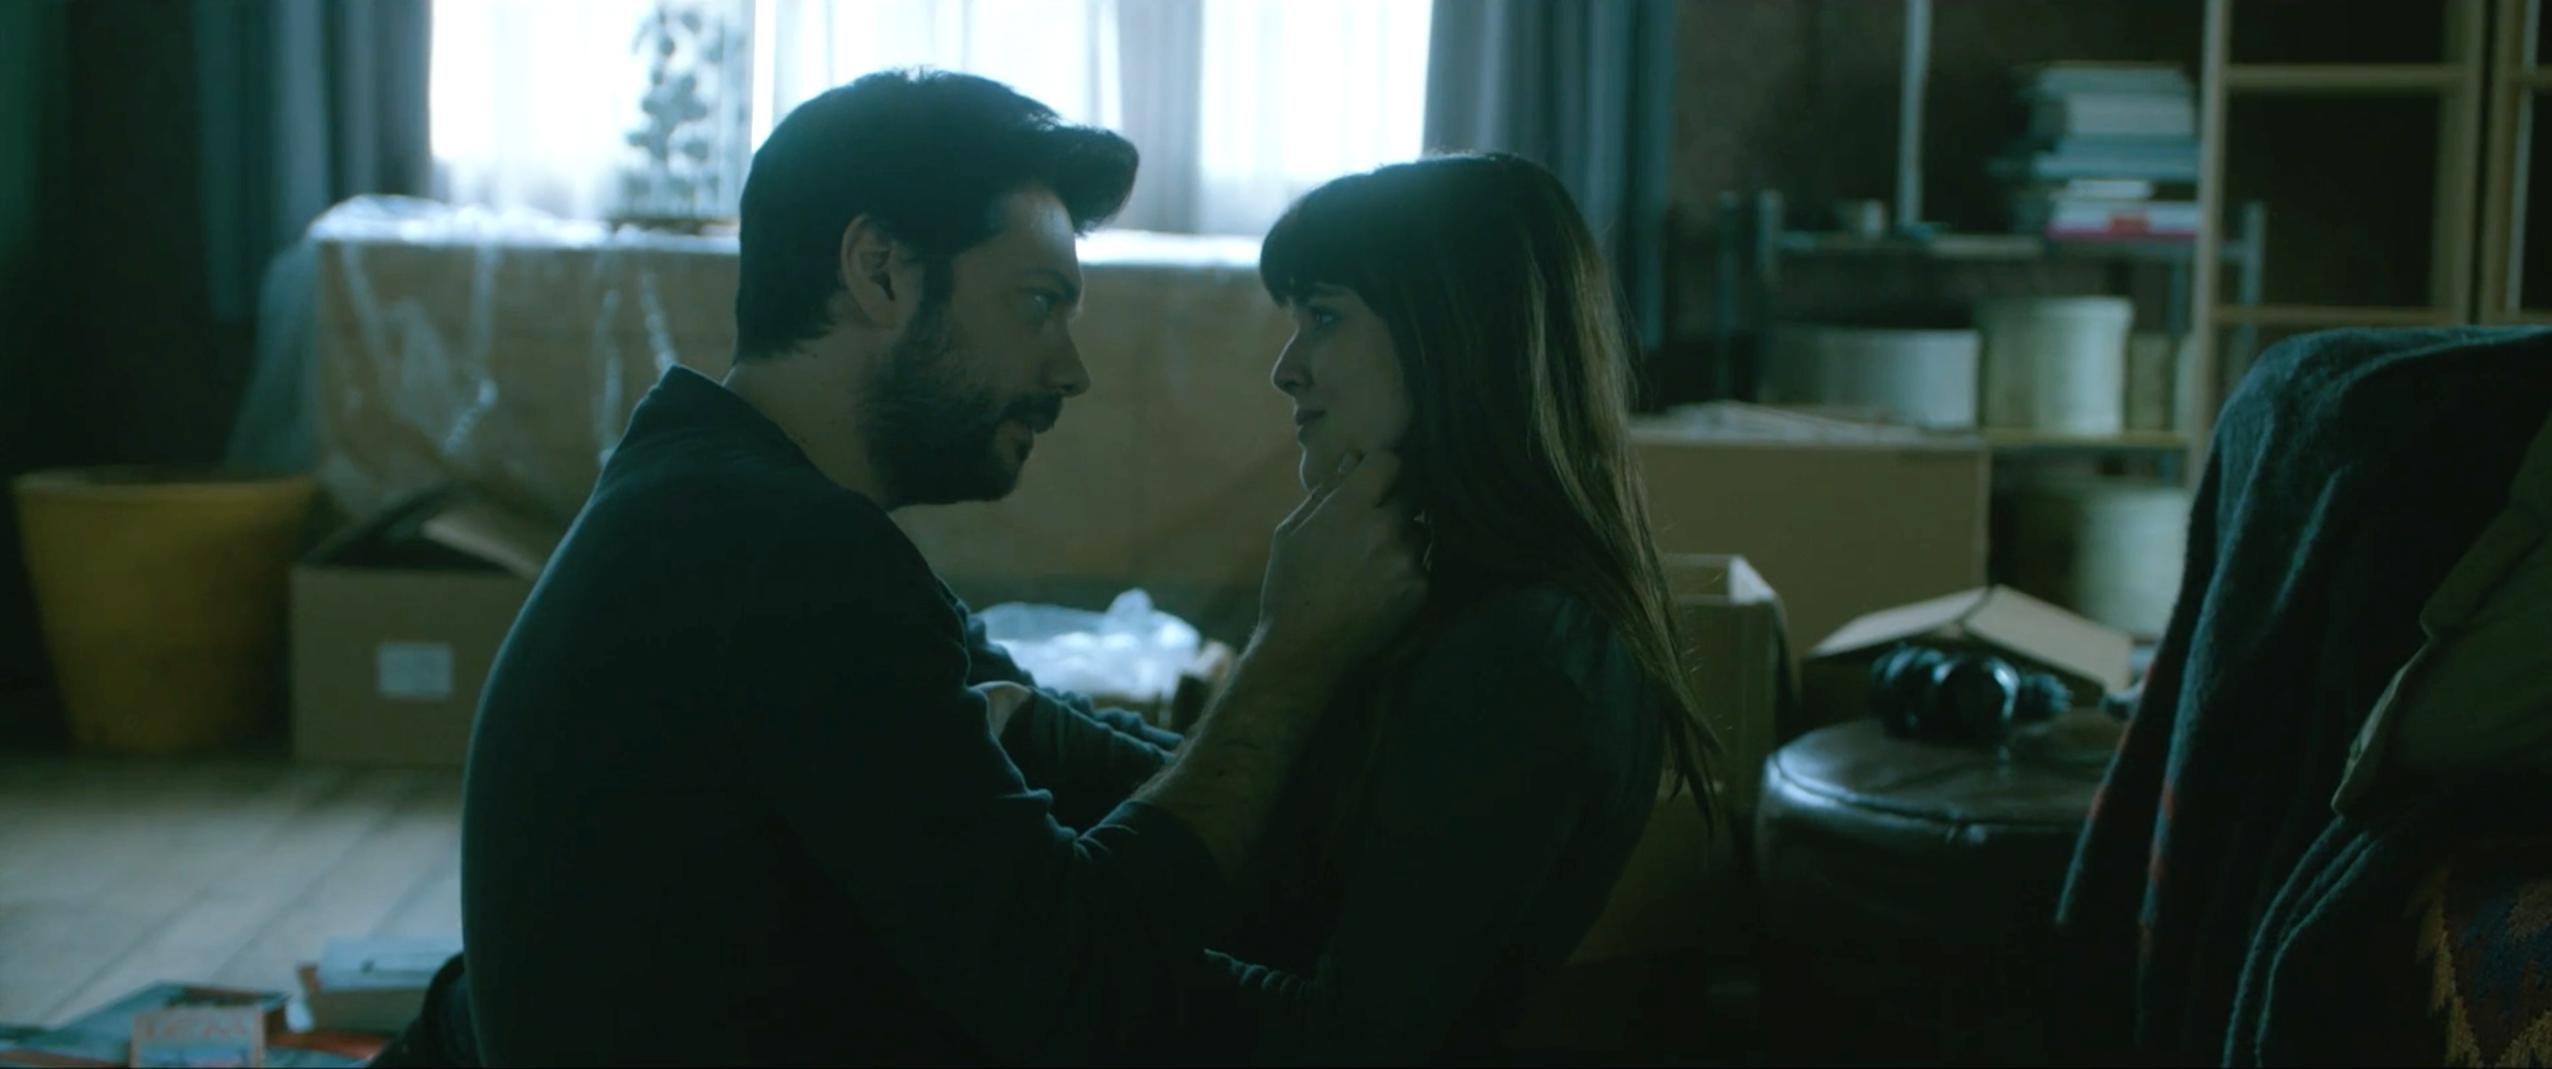 Adriana Ugarte and Álvaro Morte in Durante la tormenta (2018)